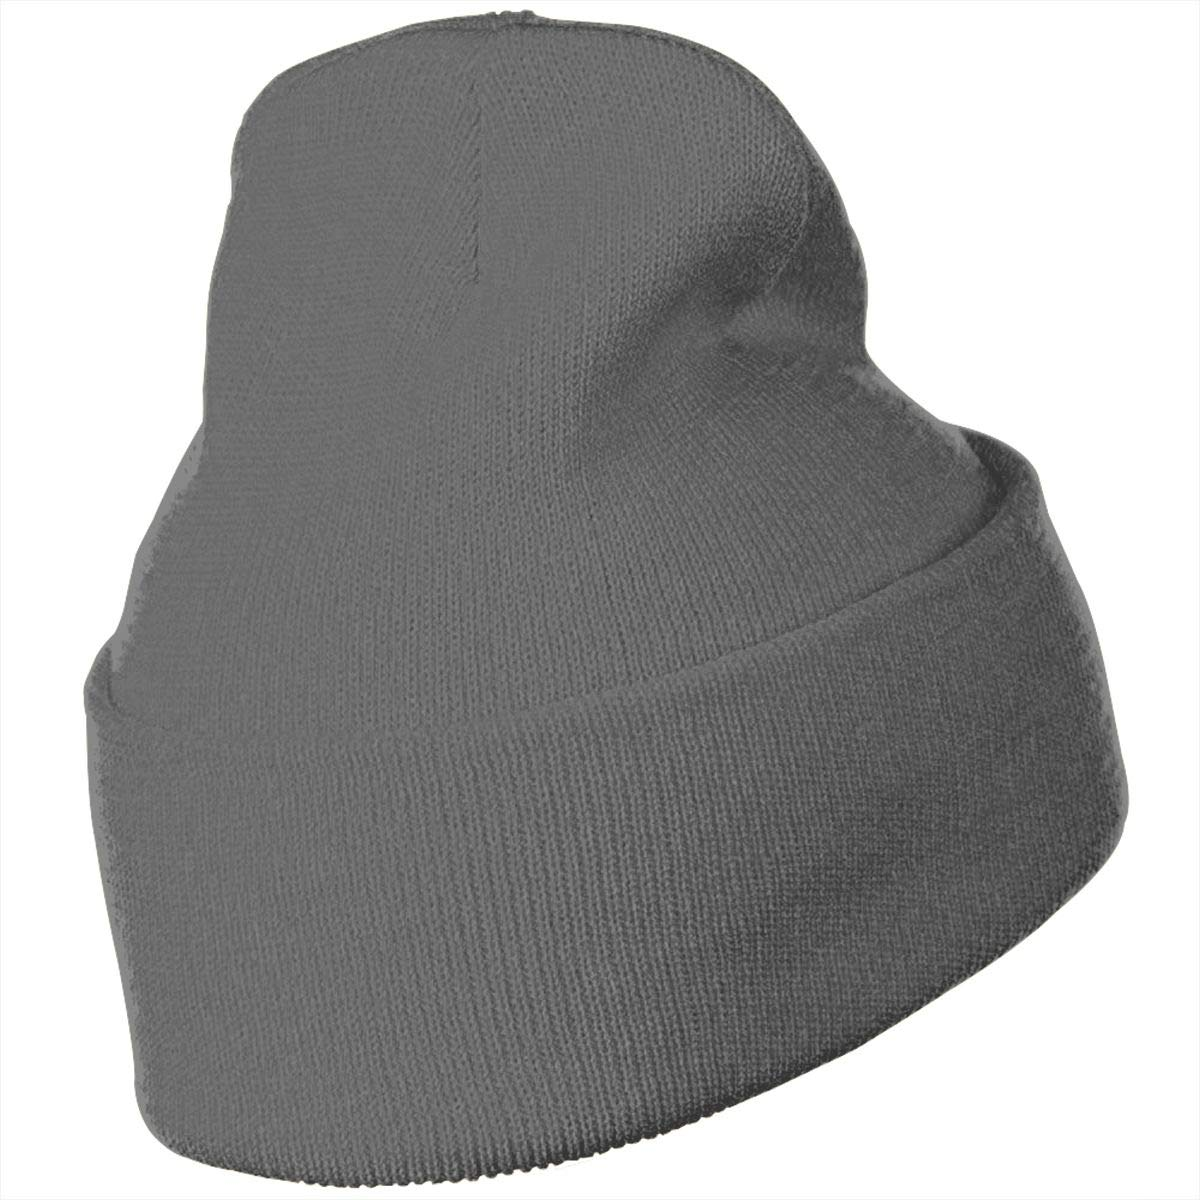 Christmas Dog Cuffed Plain Baggy Winter Skull Knit Hat Cap Slouchy Beanie Hat for Men /& Women Stylish